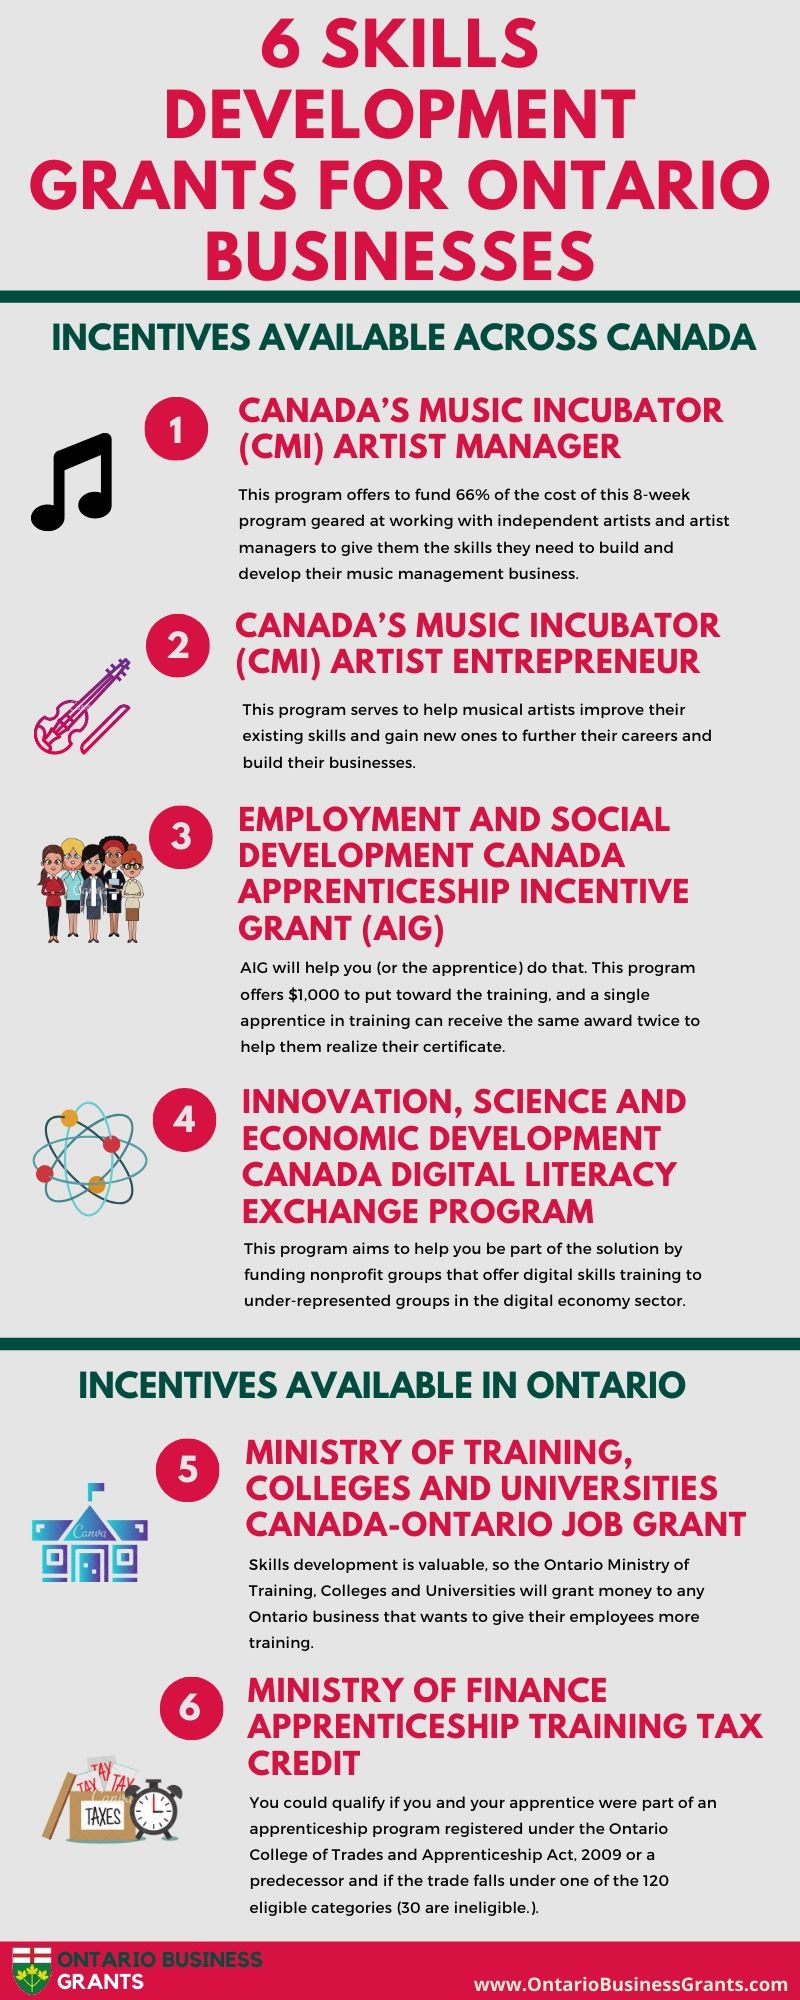 6 Skills Development Grants for Ontario Businesses